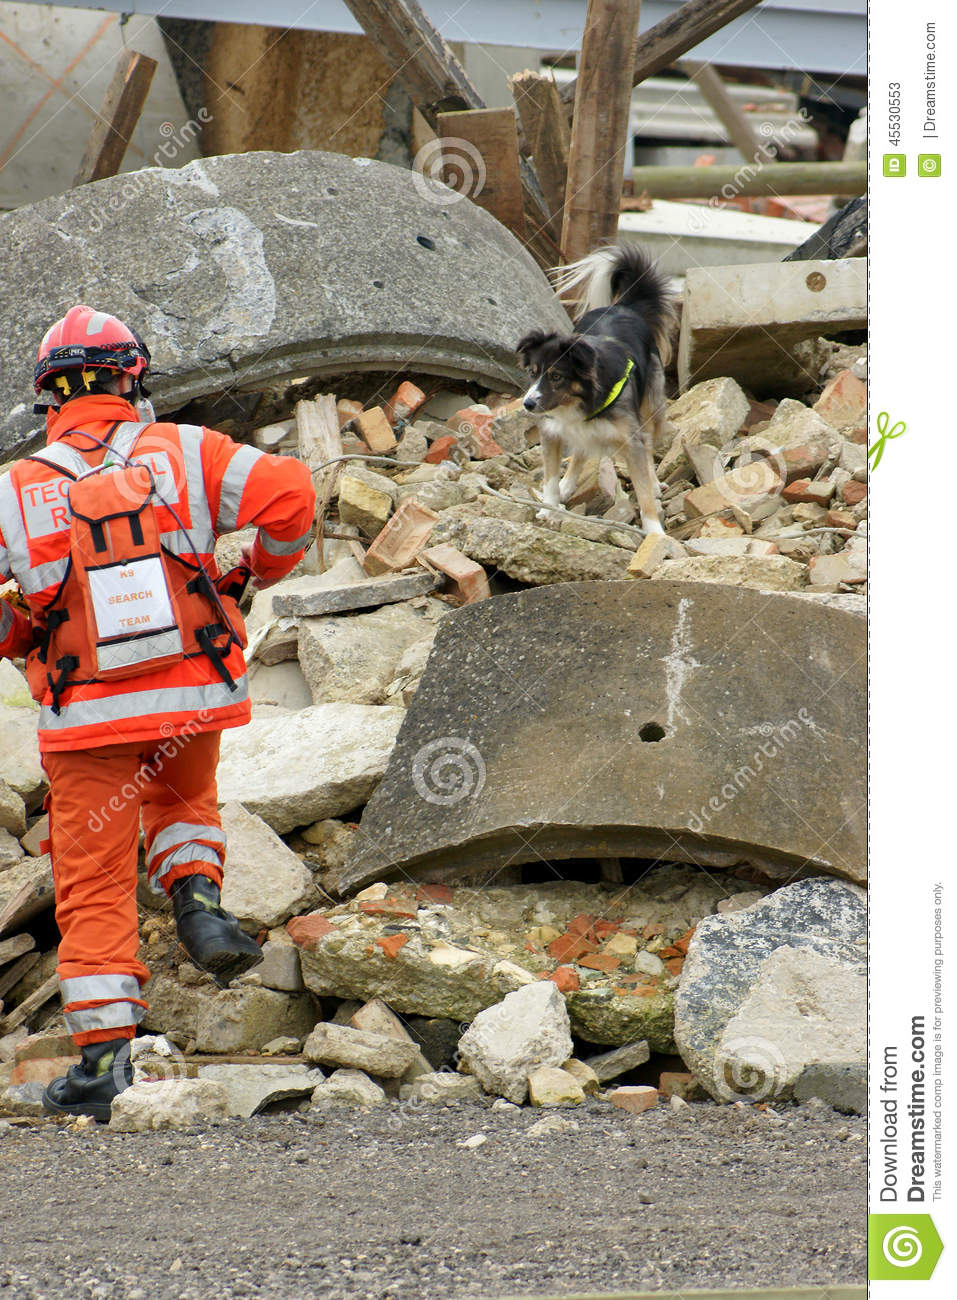 Fire fighter at building collapse